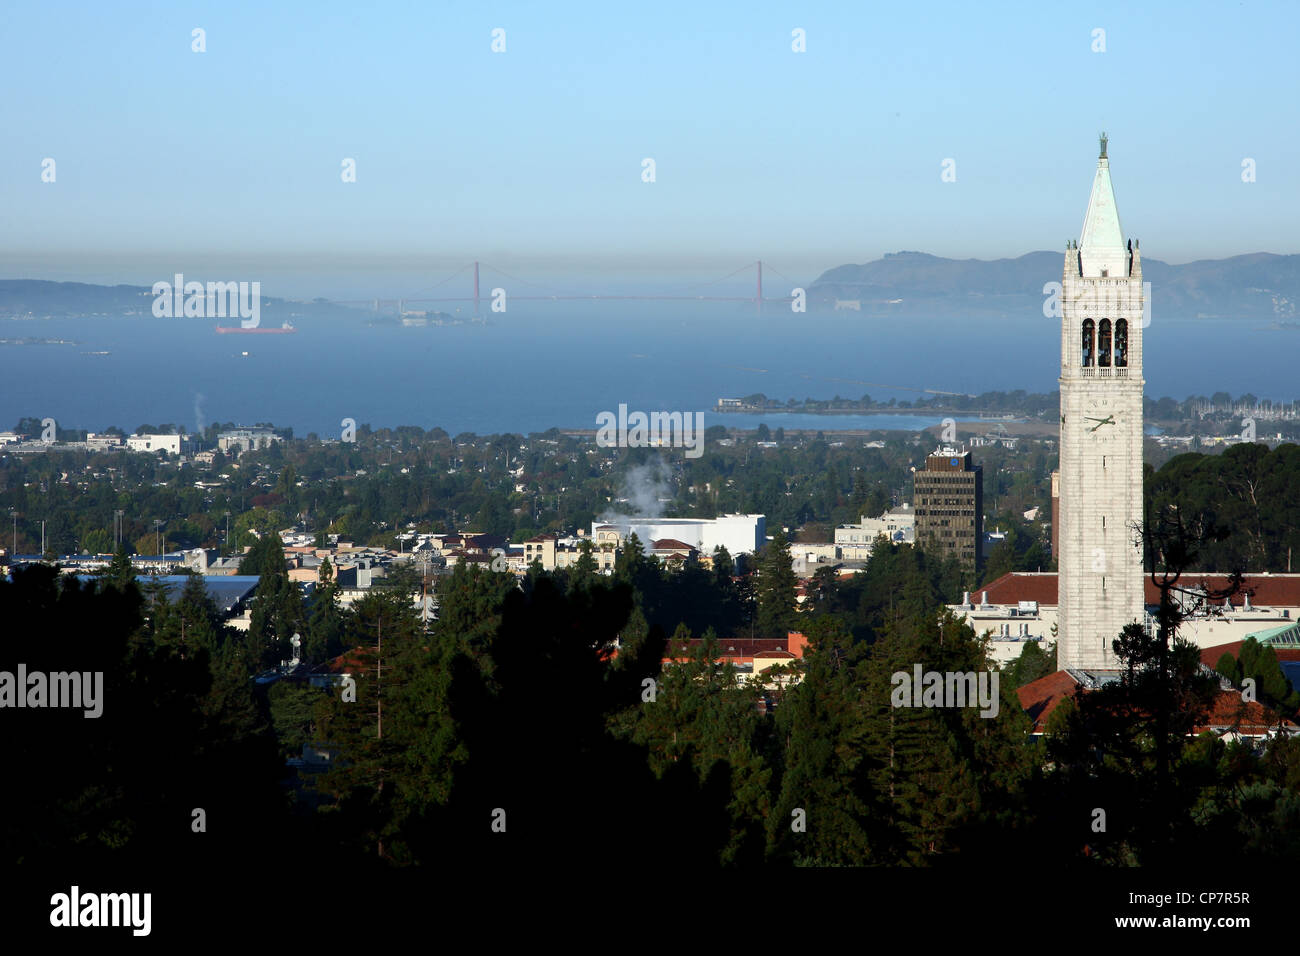 SATHER TOWER BERKELEY GOLDEN GATE BRIDGE BERKELEY UNIVERSITY OF CALIFORNIA USA 06 October 2011 - Stock Image